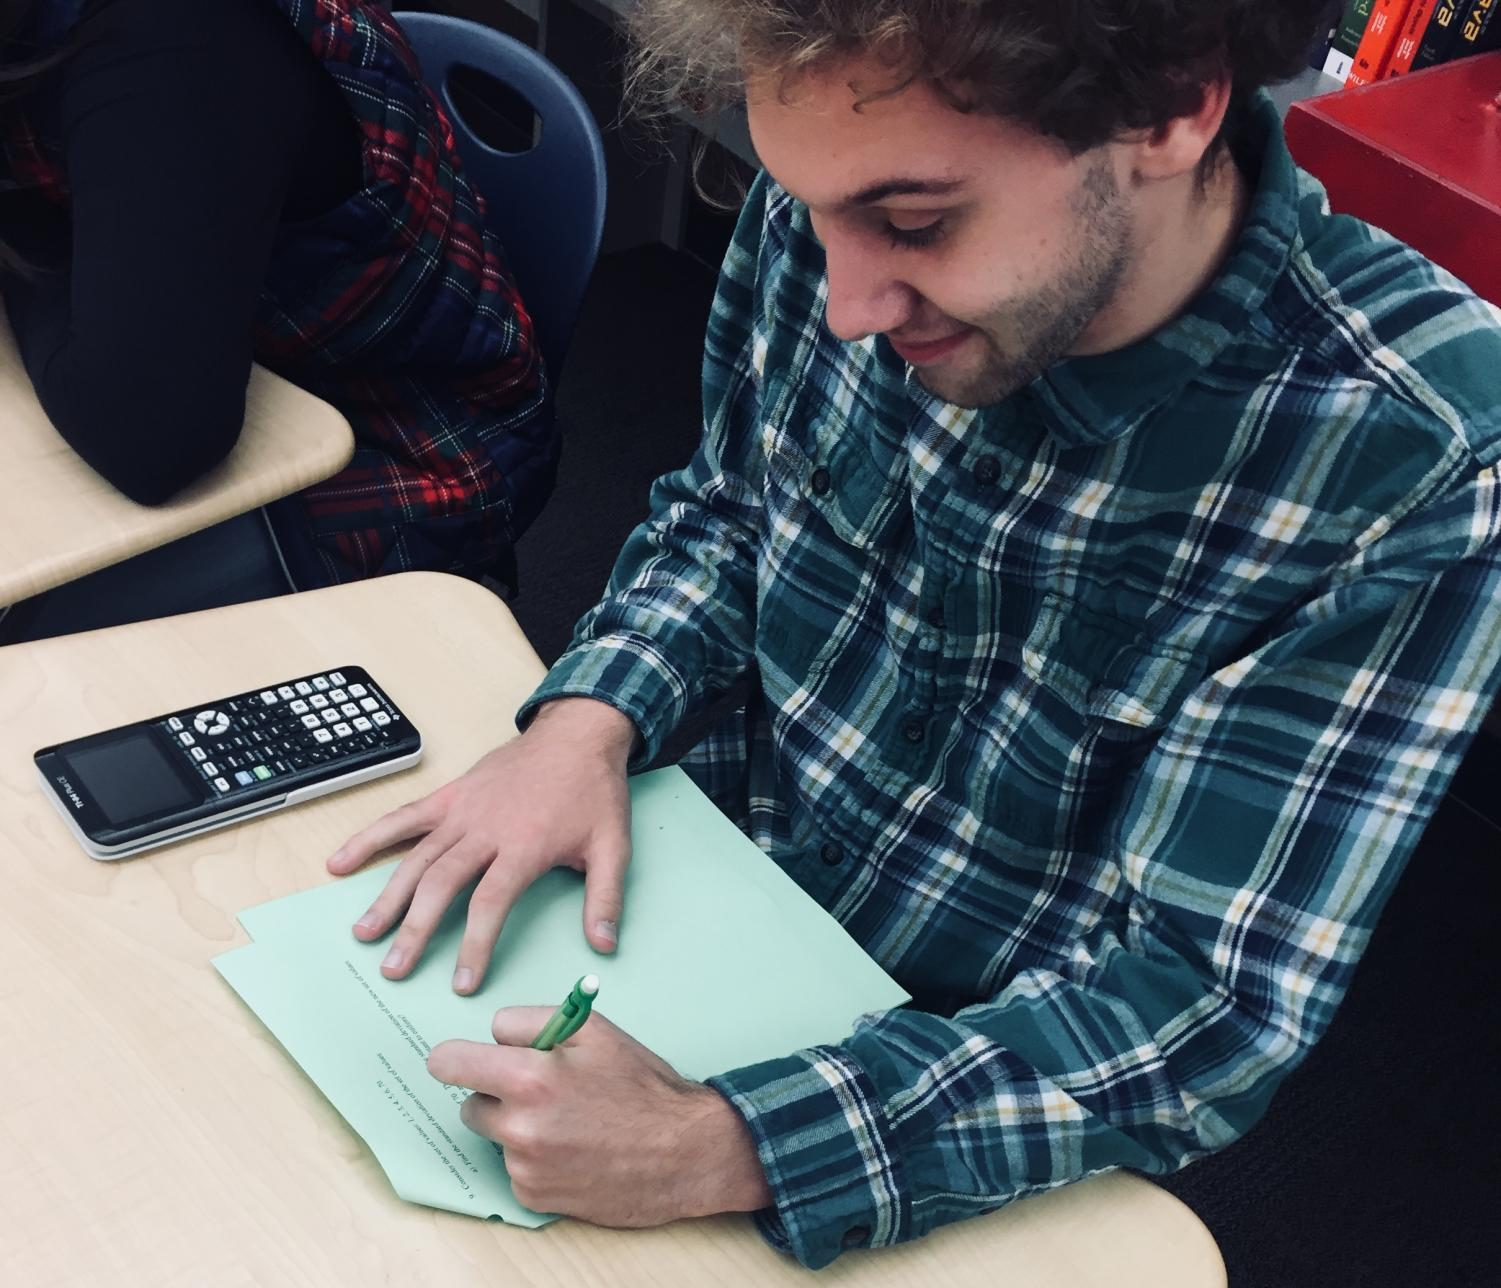 Arrowhead senior Benjamin Klein takes on his math homework with a smile.